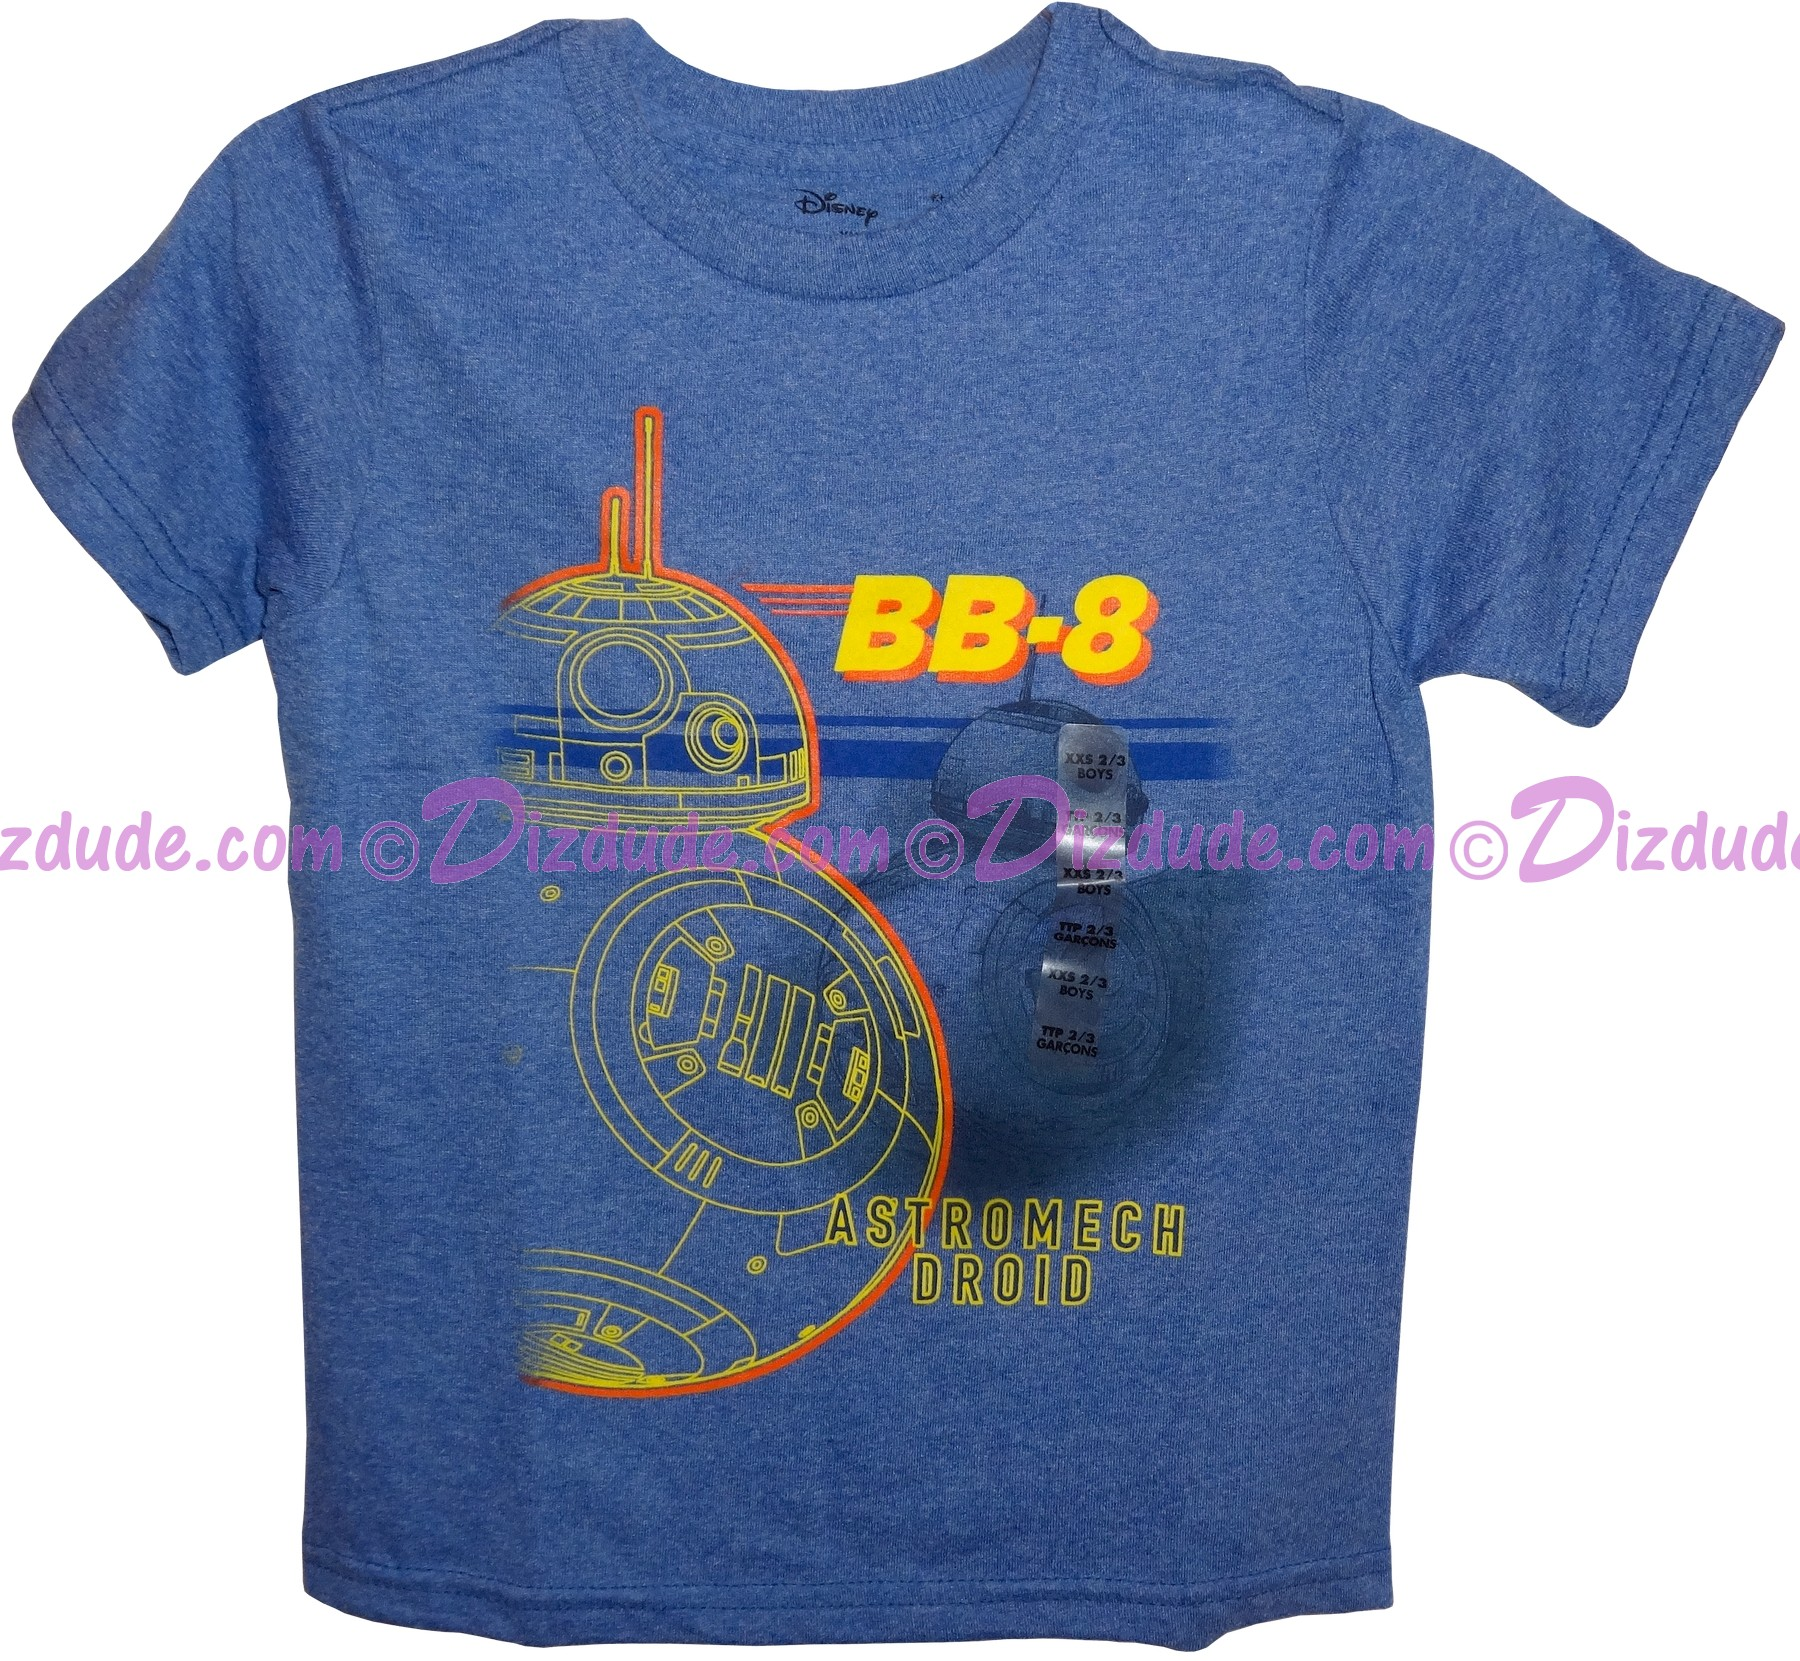 BB-8 Astromech Droid Youth T-Shirt (Tshirt, T shirt or Tee) - Disney's Star Wars © Dizdude.com